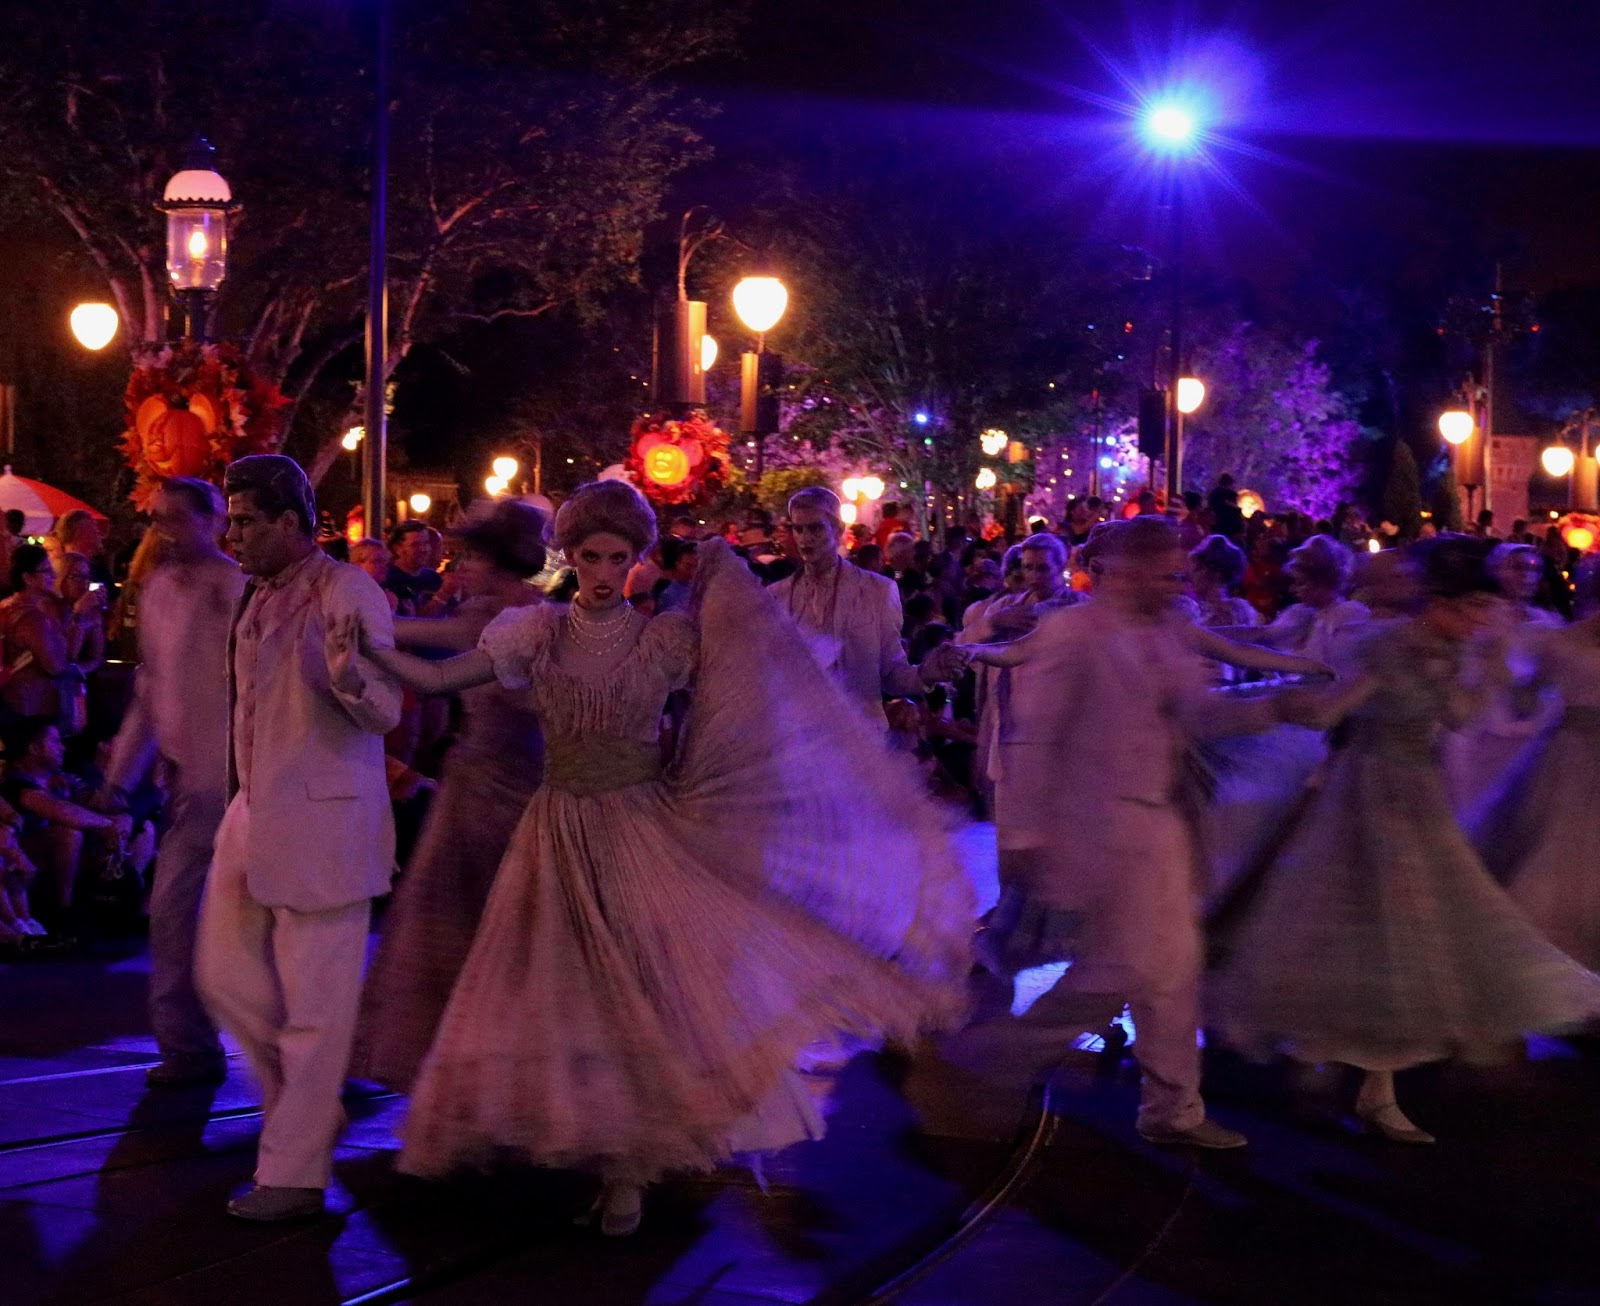 Micky's-Not-So-Scary-Halloween-Party-Boo-To-You-Parade-Haunted-Mansion-Magic-Kingdom-Disney-World